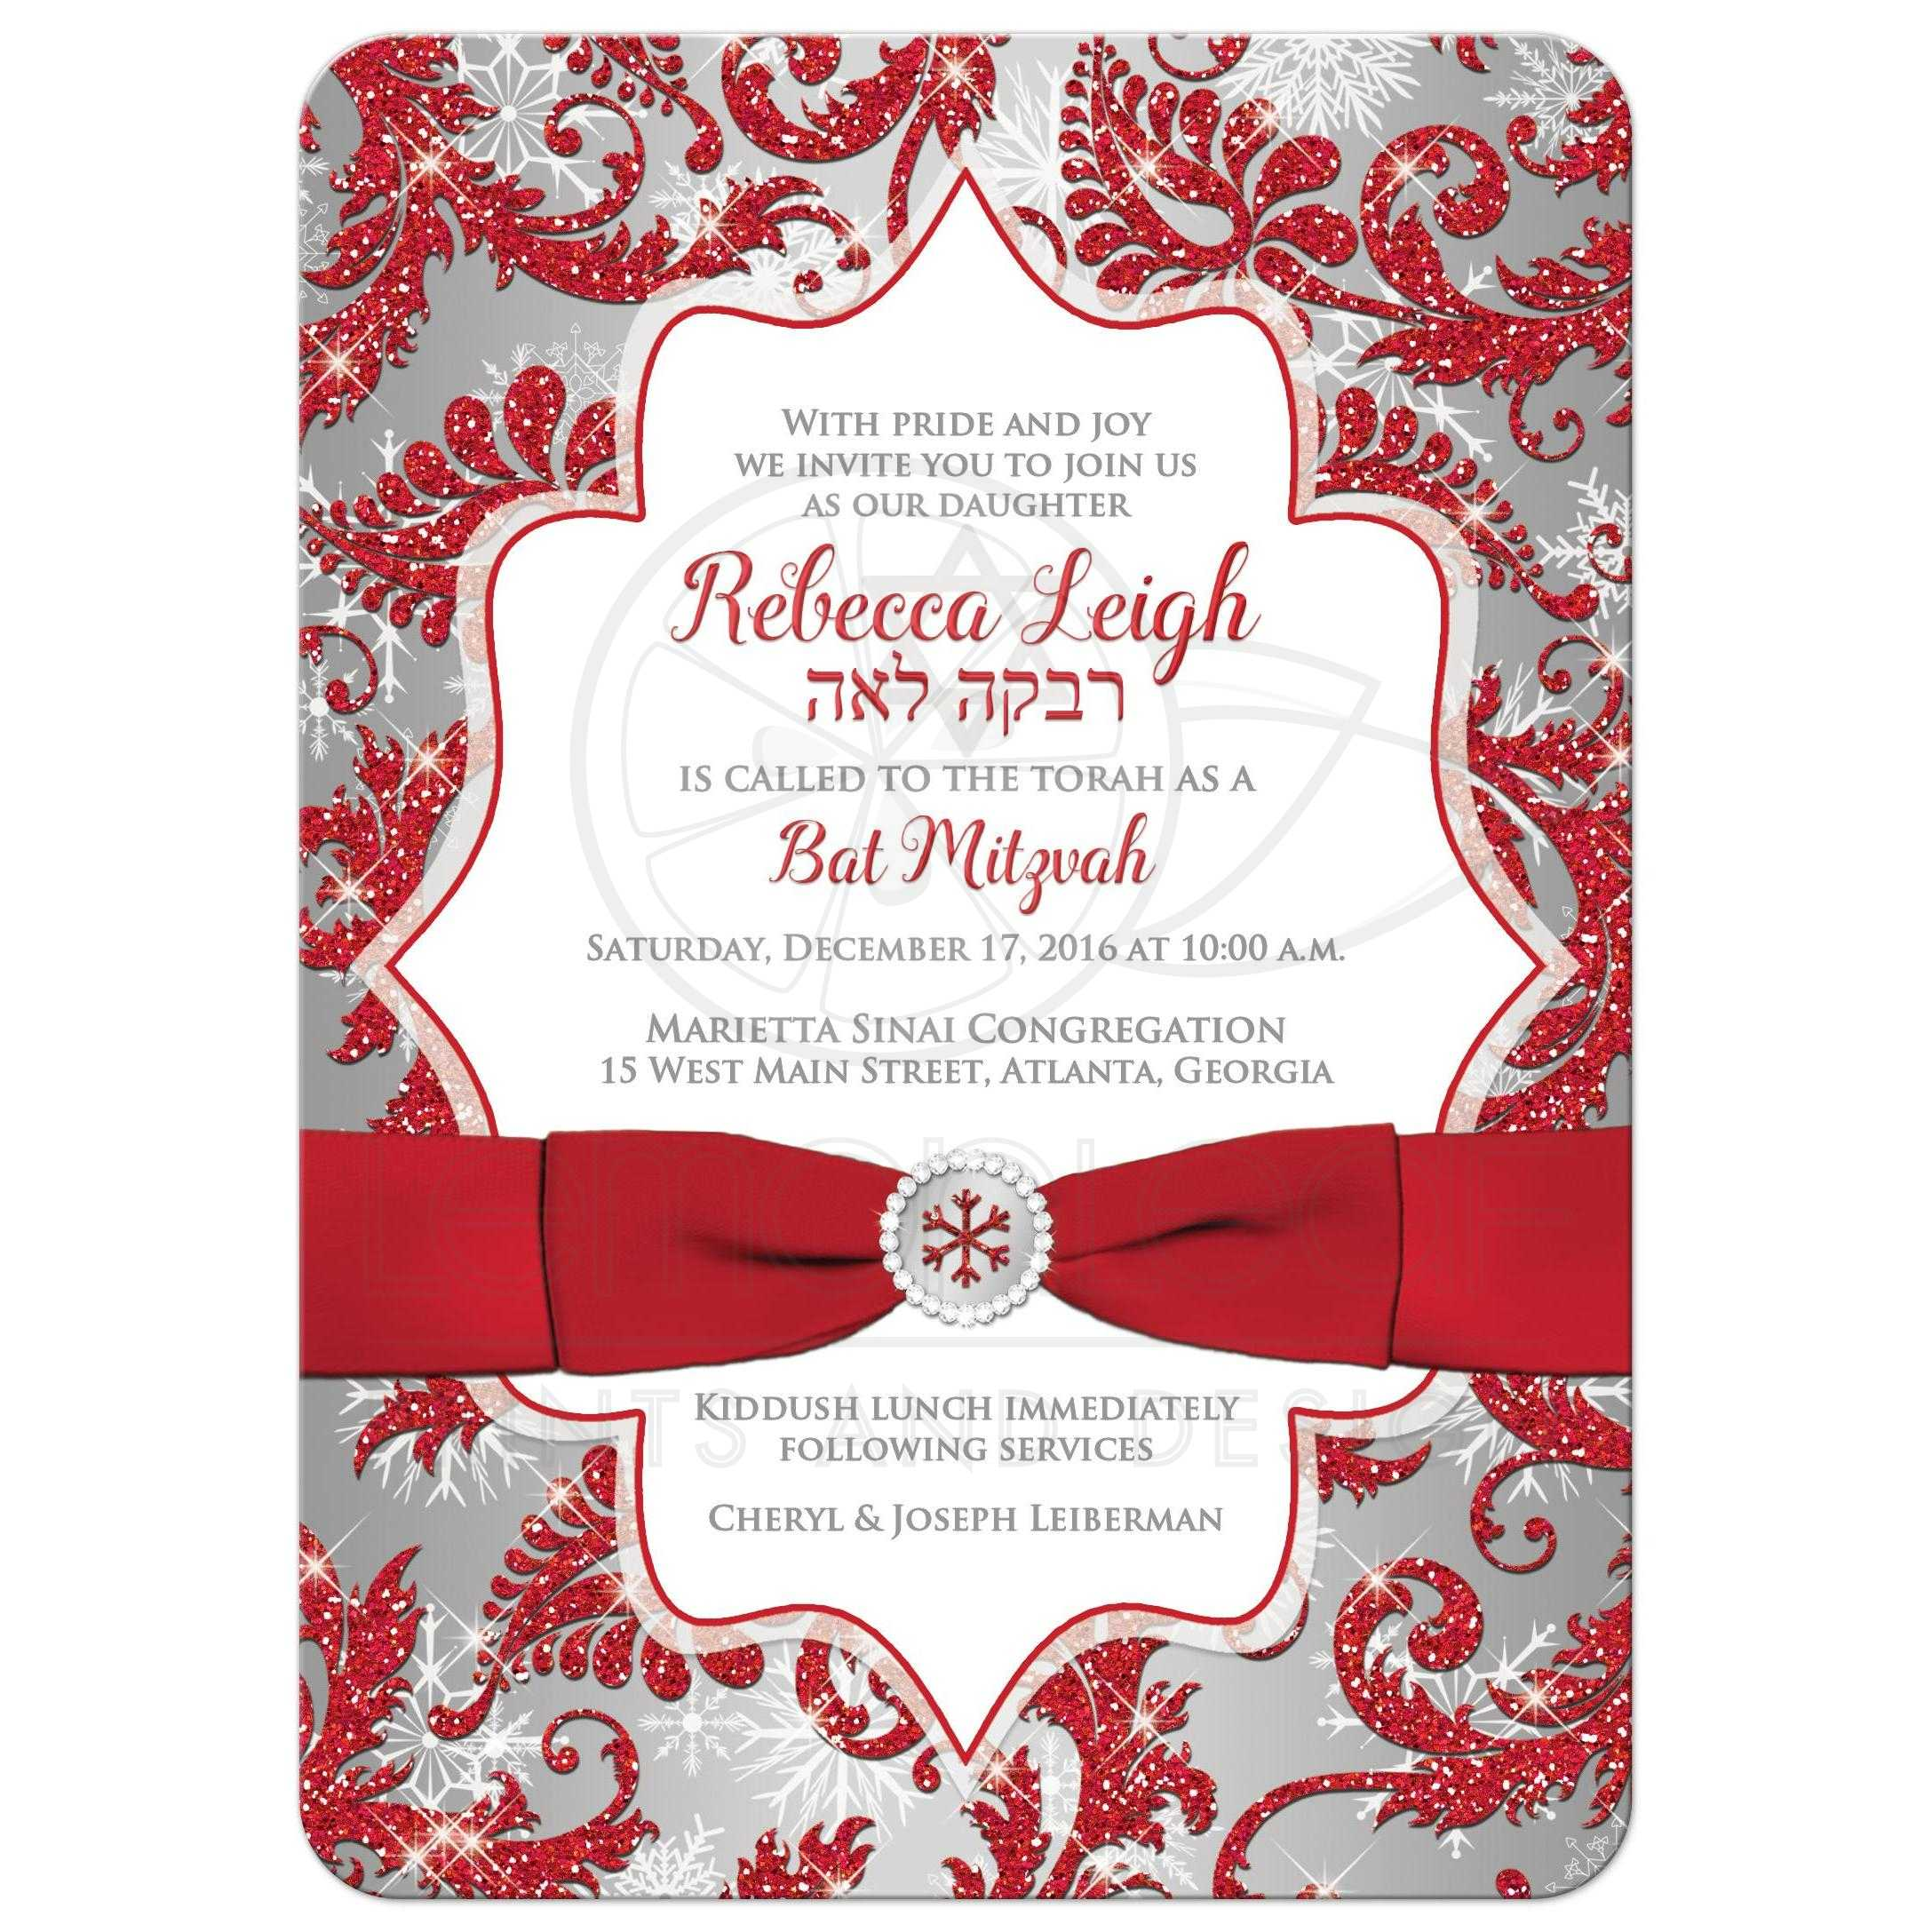 Red And Silver Wedding Invitations: Winter Wonderland Red, Silver